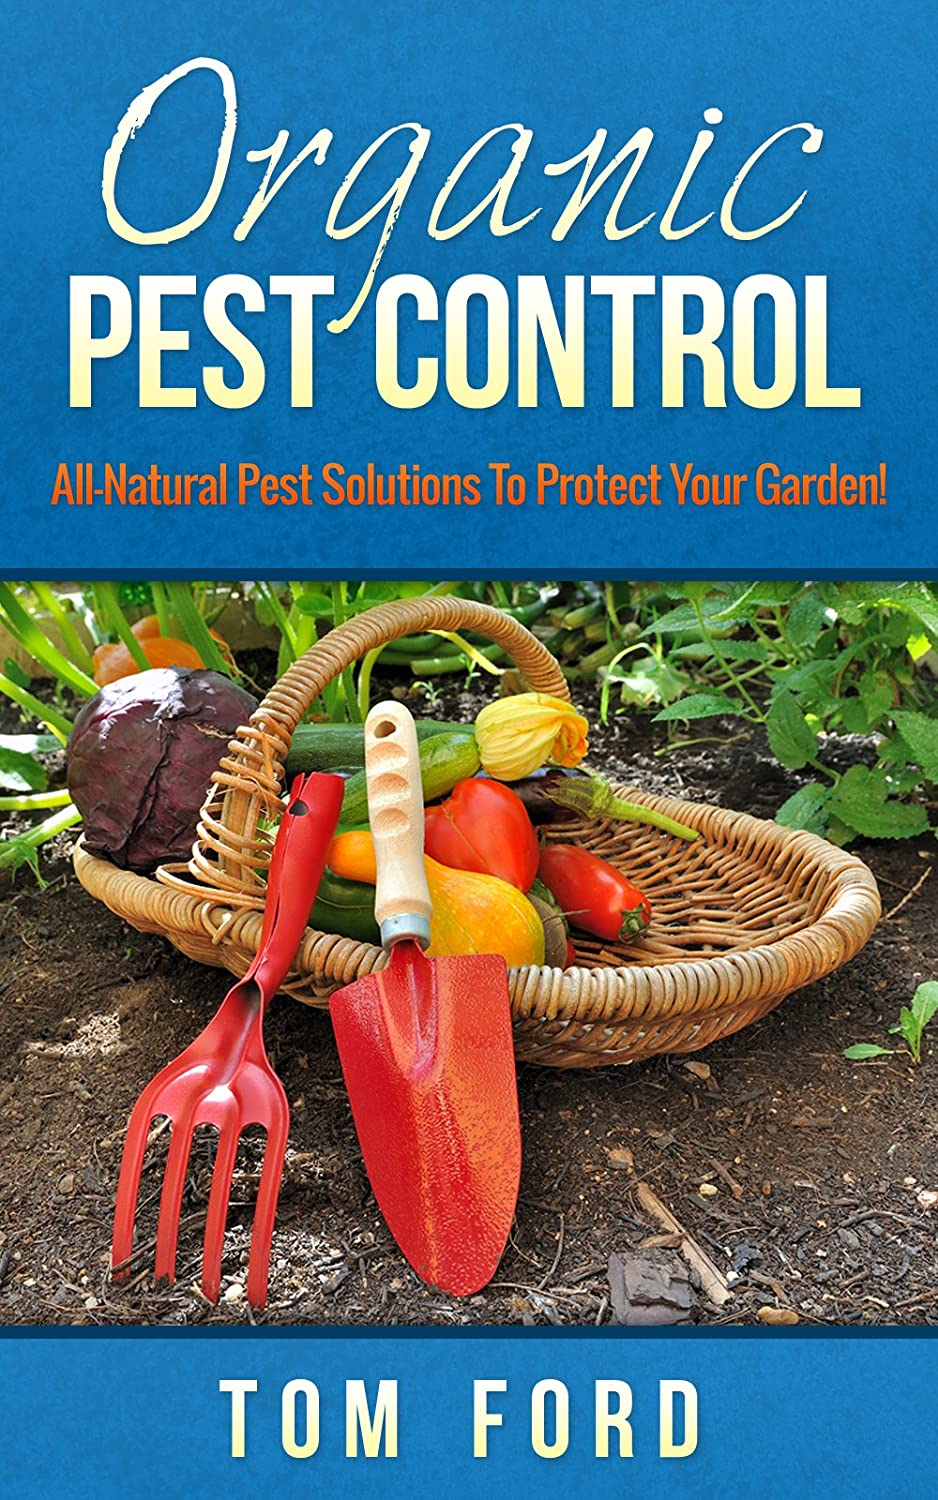 http://www.amazon.com/Organic-Pest-Control-All-Natural-Solutions-ebook/dp/B00JWVW1E6/ref=as_sl_pc_ss_til?tag=lettfromahome-20&linkCode=w01&linkId=5VGNPF2FL2IF7JVA&creativeASIN=B00JWVW1E6